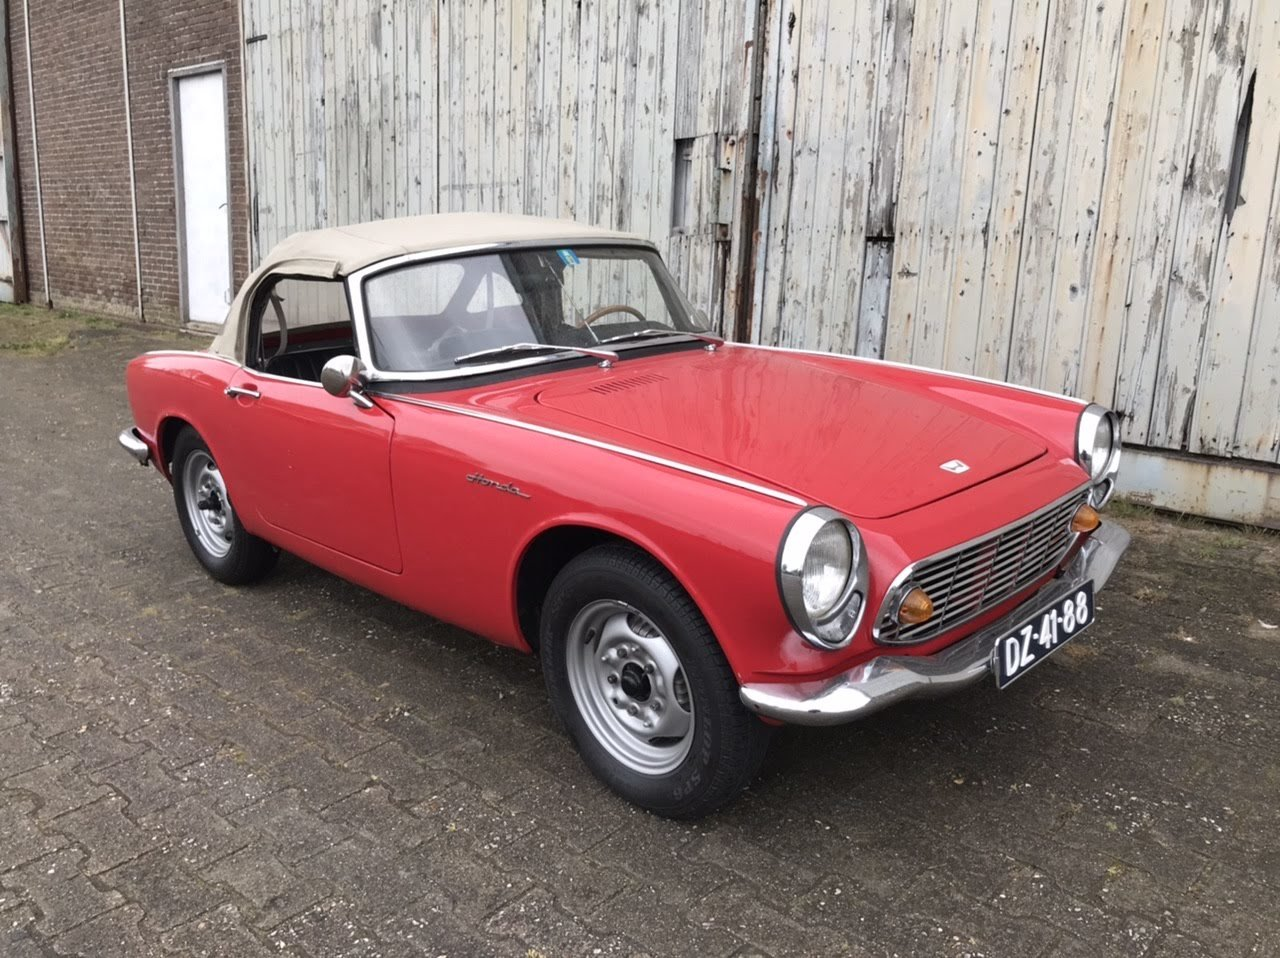 1966 Honda S600 roadster. Very nice, rustfree  For Sale (picture 2 of 6)